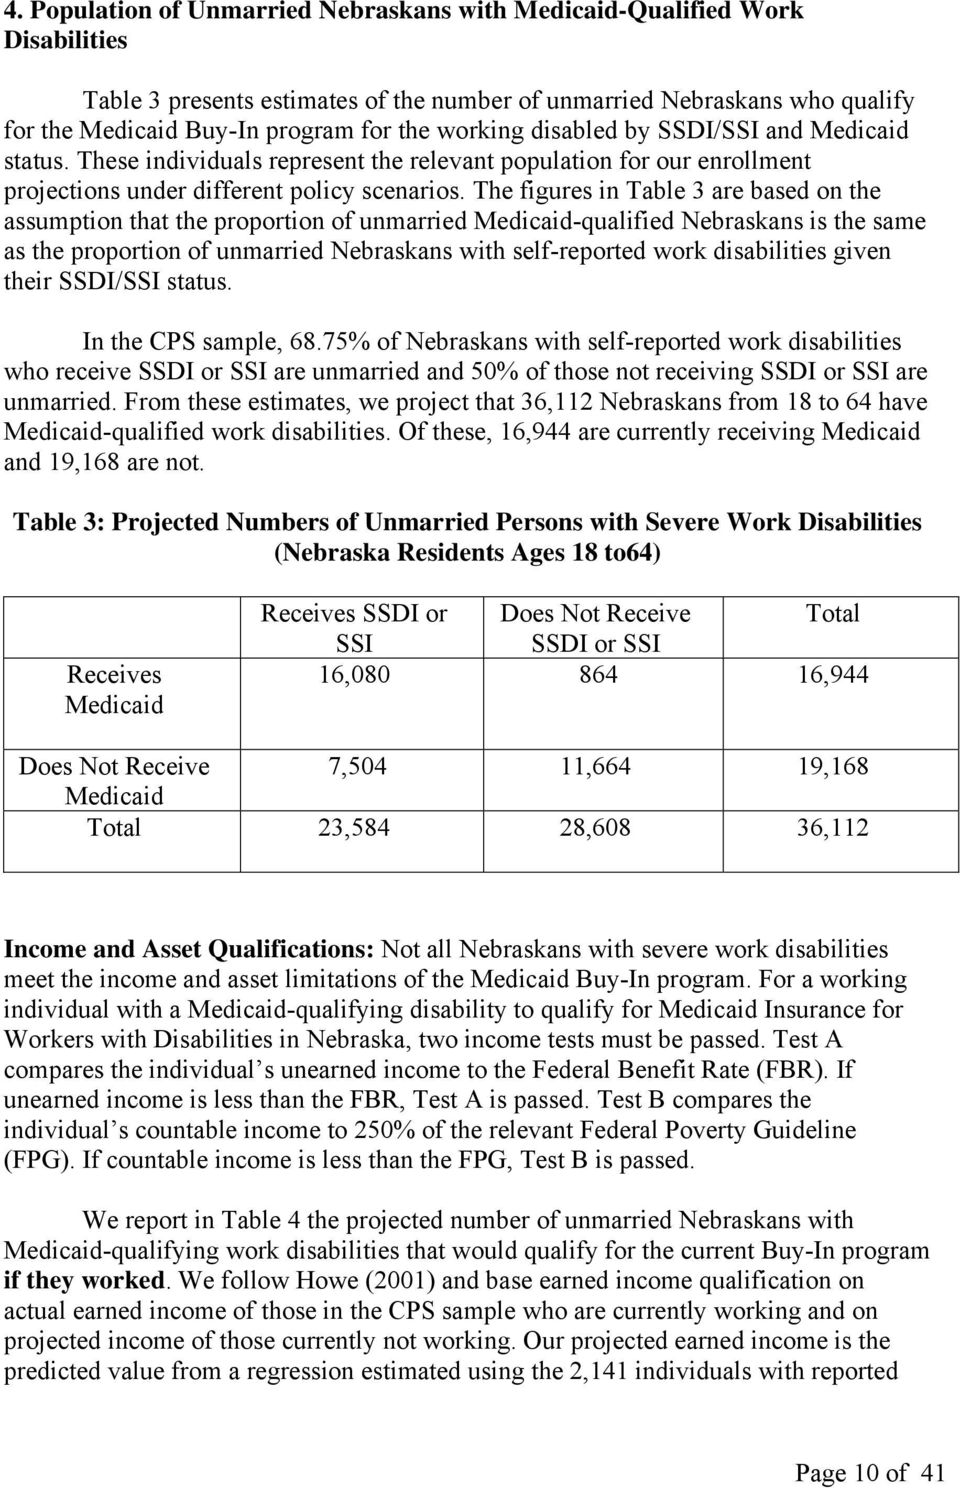 The figures in Table 3 are based on the assumption that the proportion of unmarried Medicaid-qualified Nebraskans is the same as the proportion of unmarried Nebraskans with self-reported work